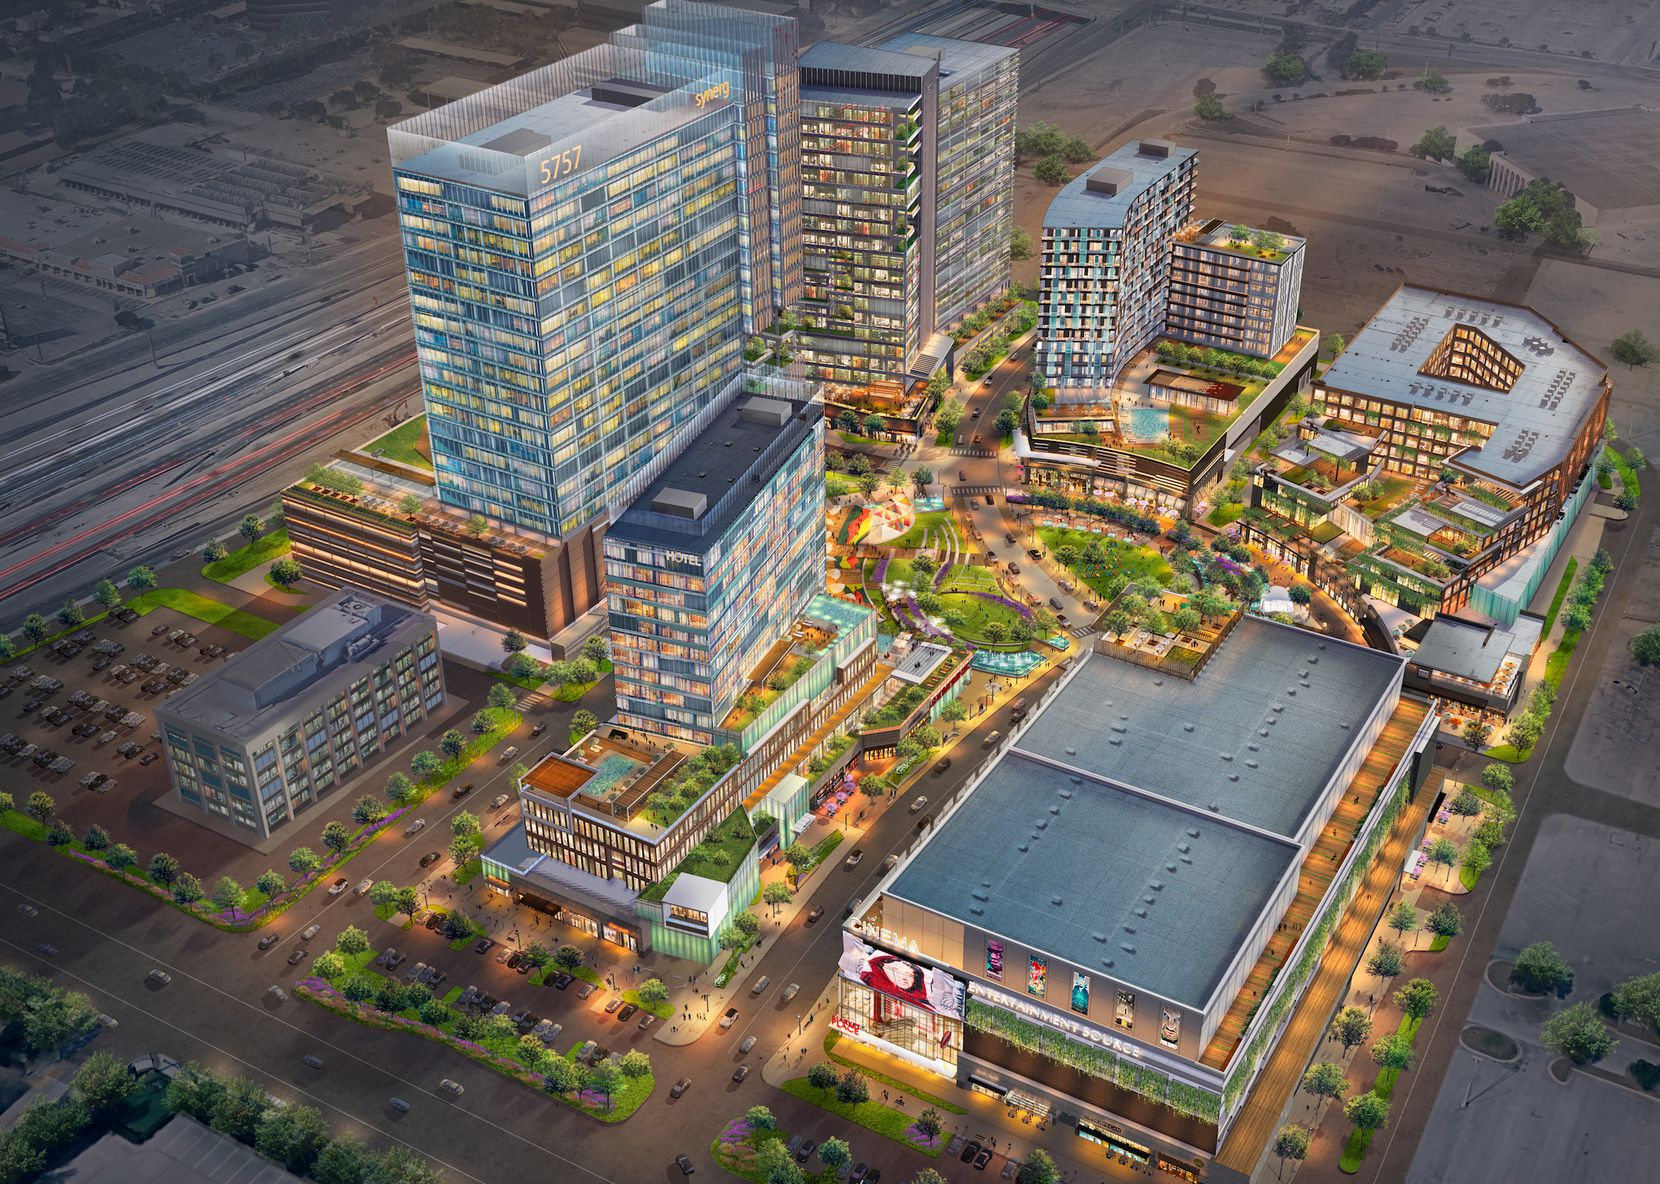 Developers KDC, Toll Brothers and Seritage Growth Properties plan to build office towers, apartments, retail space and other development on the site of the old Sears store at Valley View mall in North Dallas.